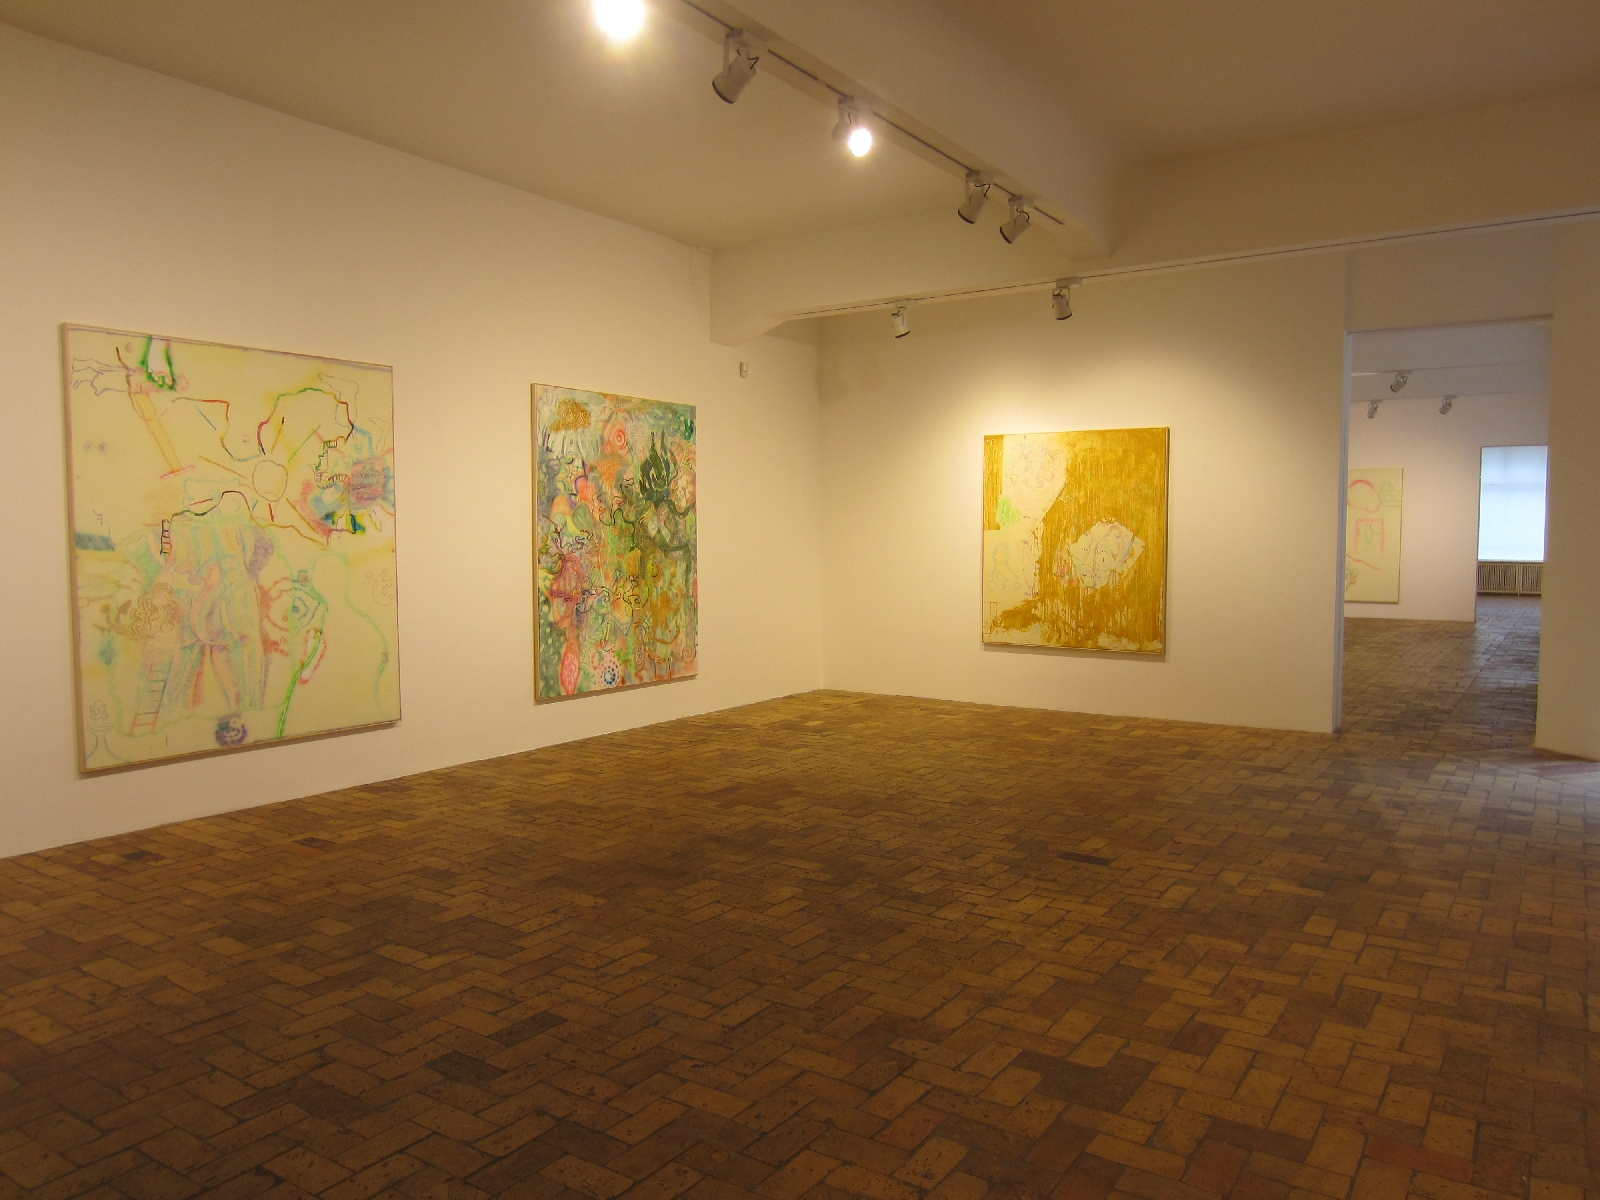 Berlin Gallery Weekend 2012 - michael williams @ vw